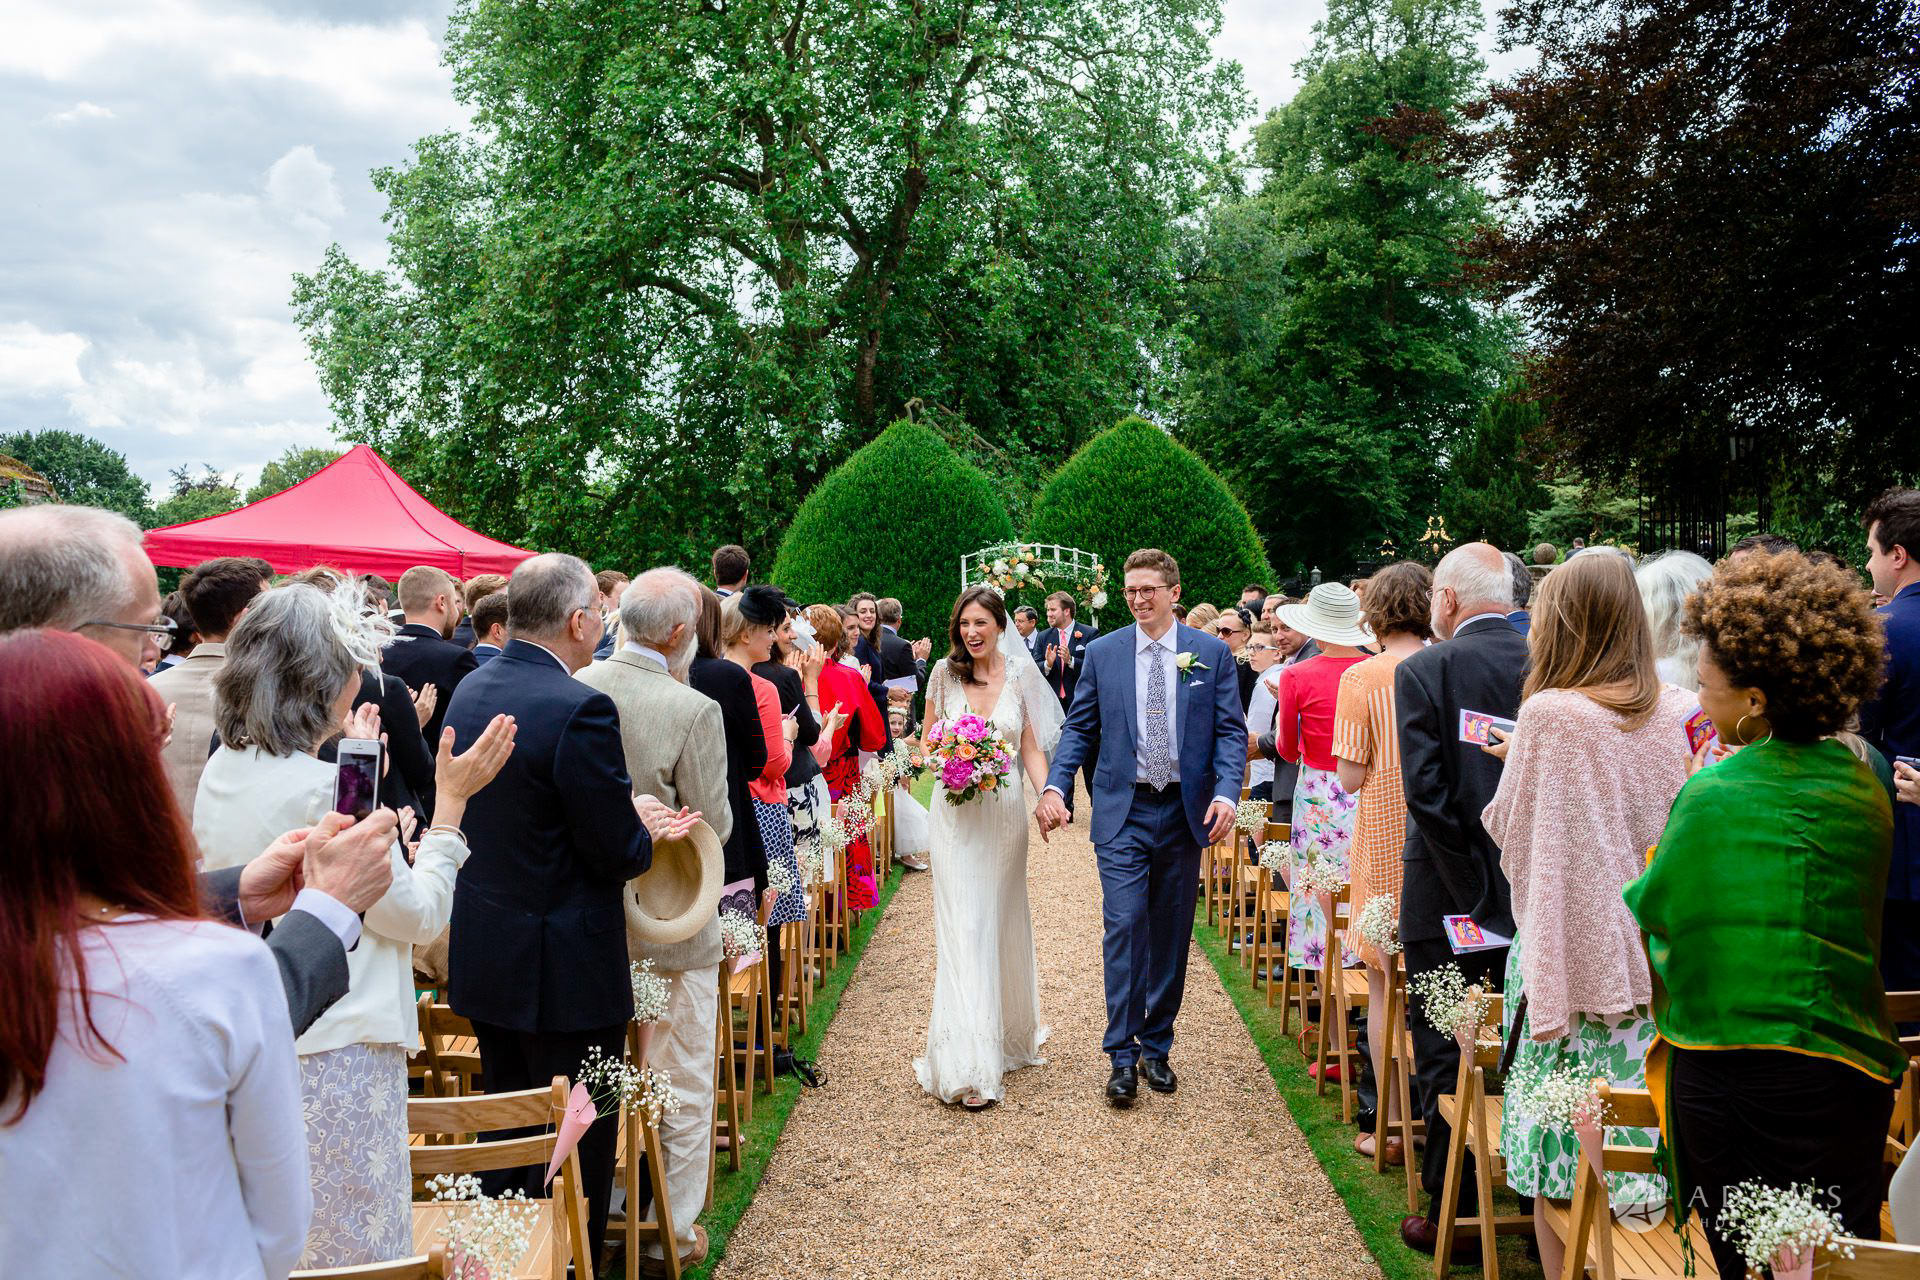 Clare College wedding married couple walks back